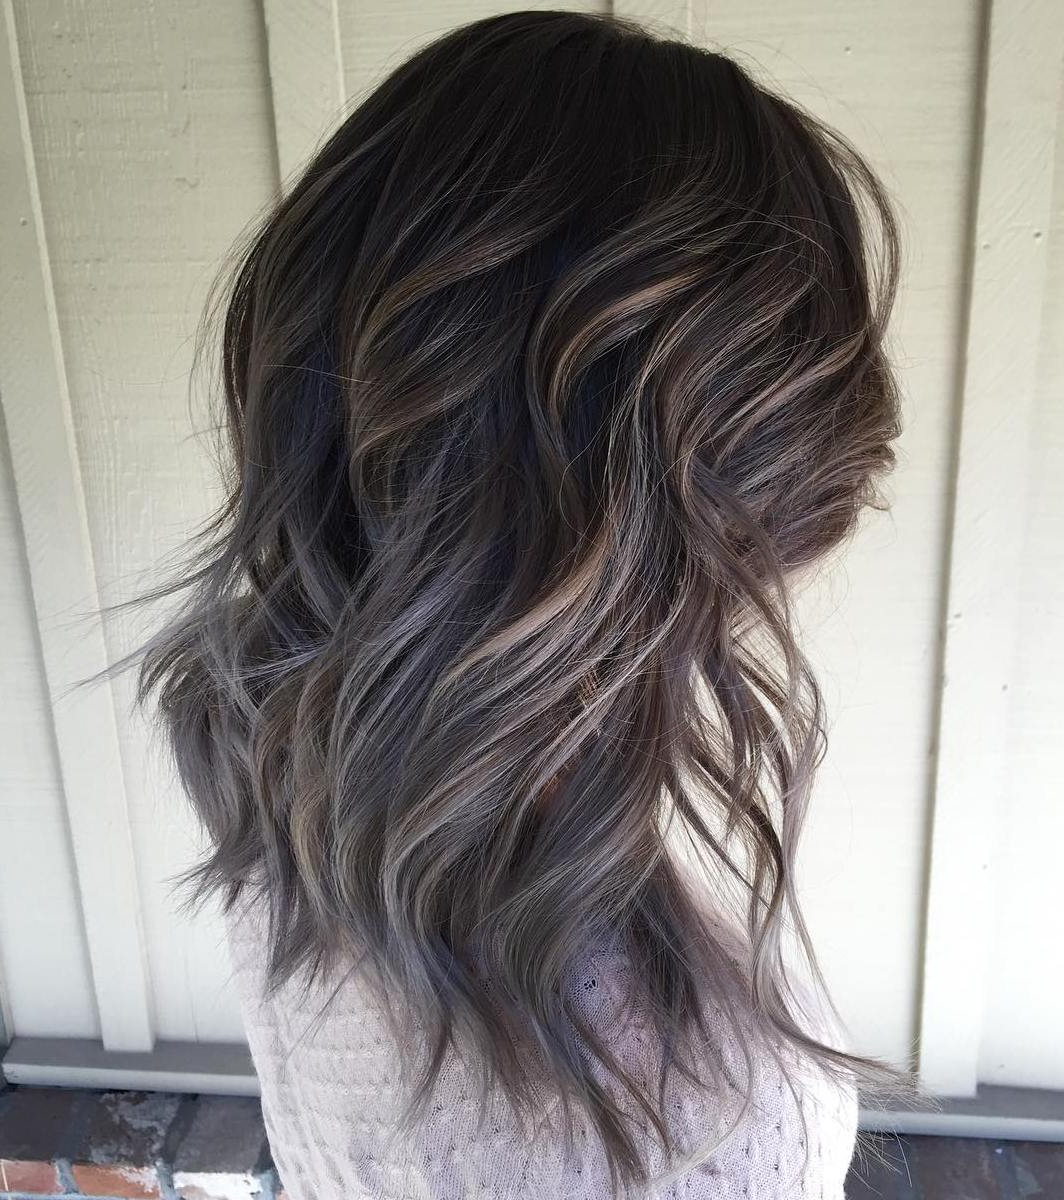 Most Recently Released Easy Side Downdo Hairstyles With Caramel Highlights With Regard To 60 Ideas Of Gray And Silver Highlights On Brown Hair (View 13 of 20)